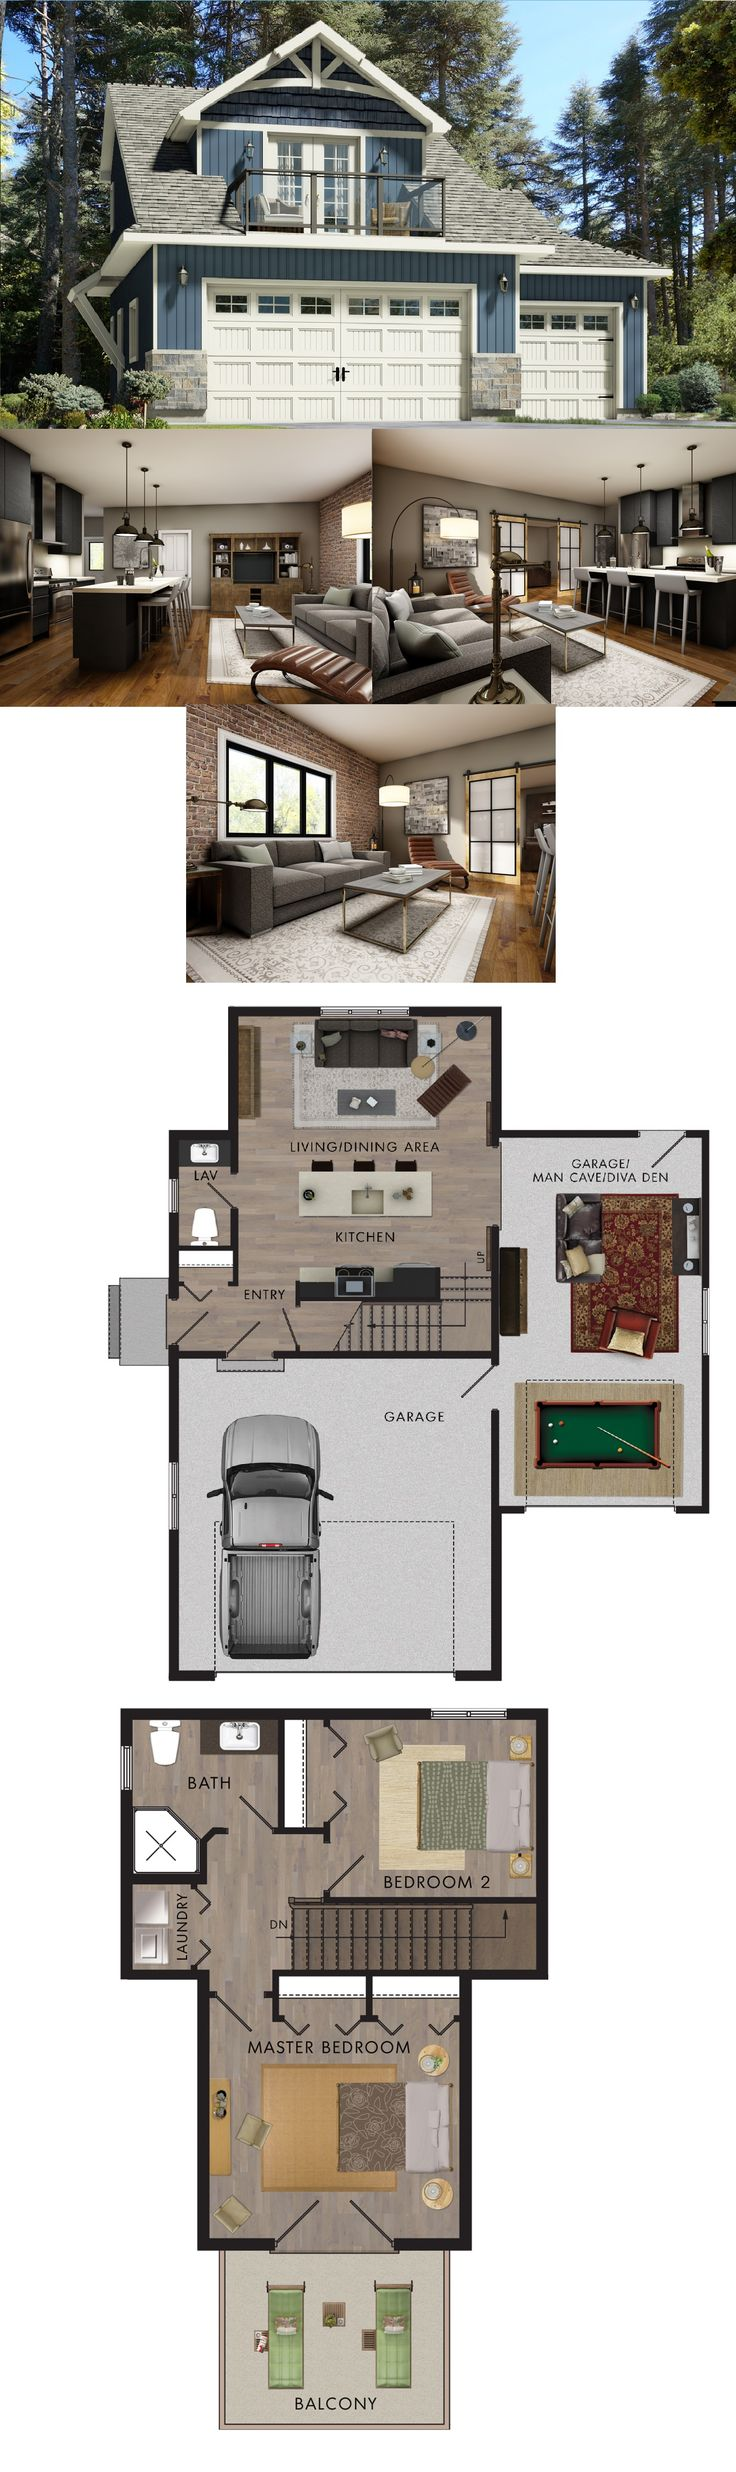 Best 25+ Small Homes Ideas On Pinterest | Small Home Plans, Tiny Cottage  Floor Plans And Dog House Blueprints Part 89